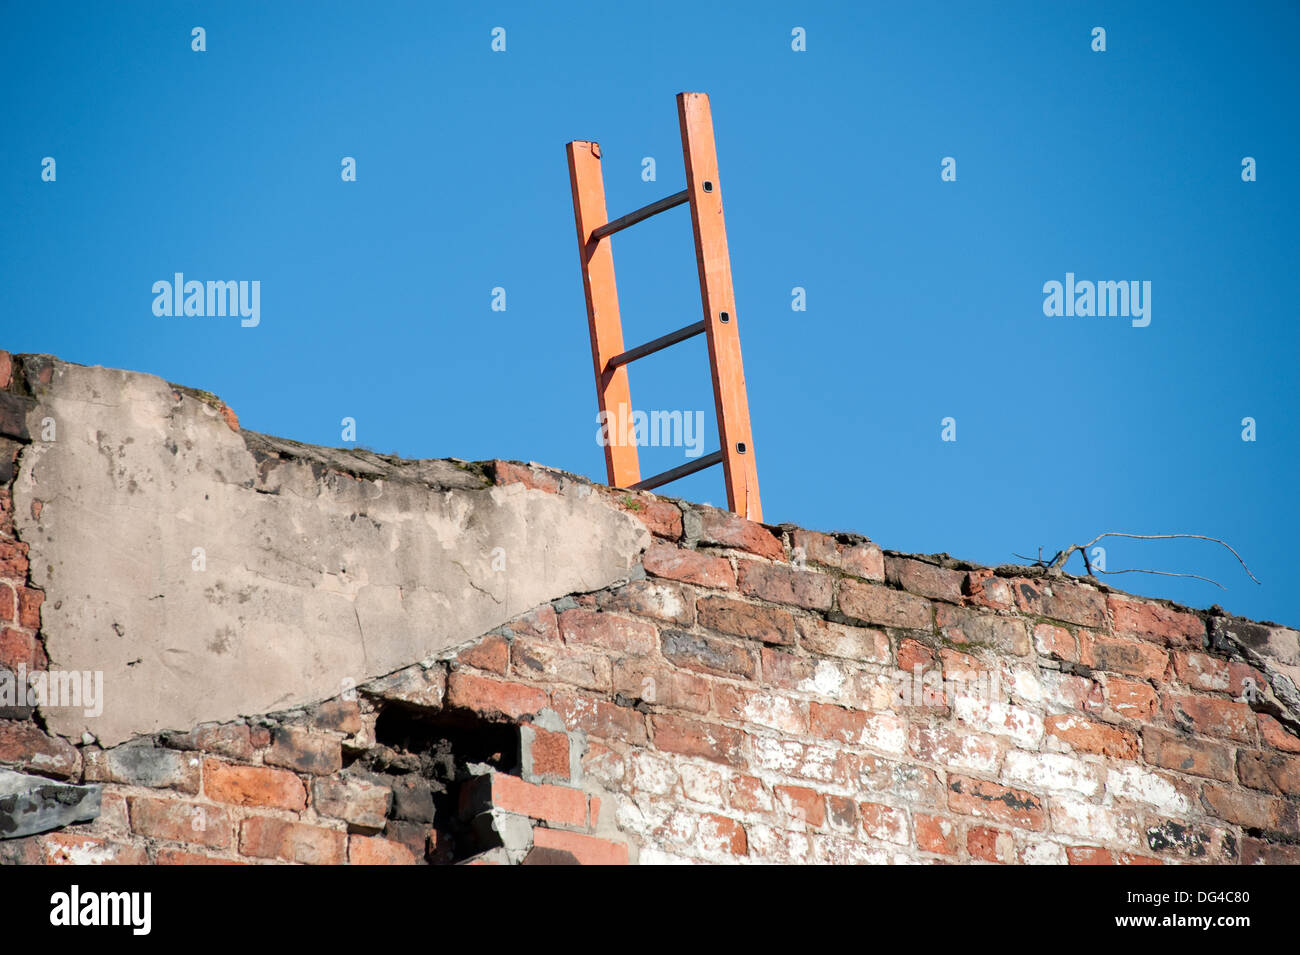 Ladder wall overcome climb over sky blue wooden - Stock Image